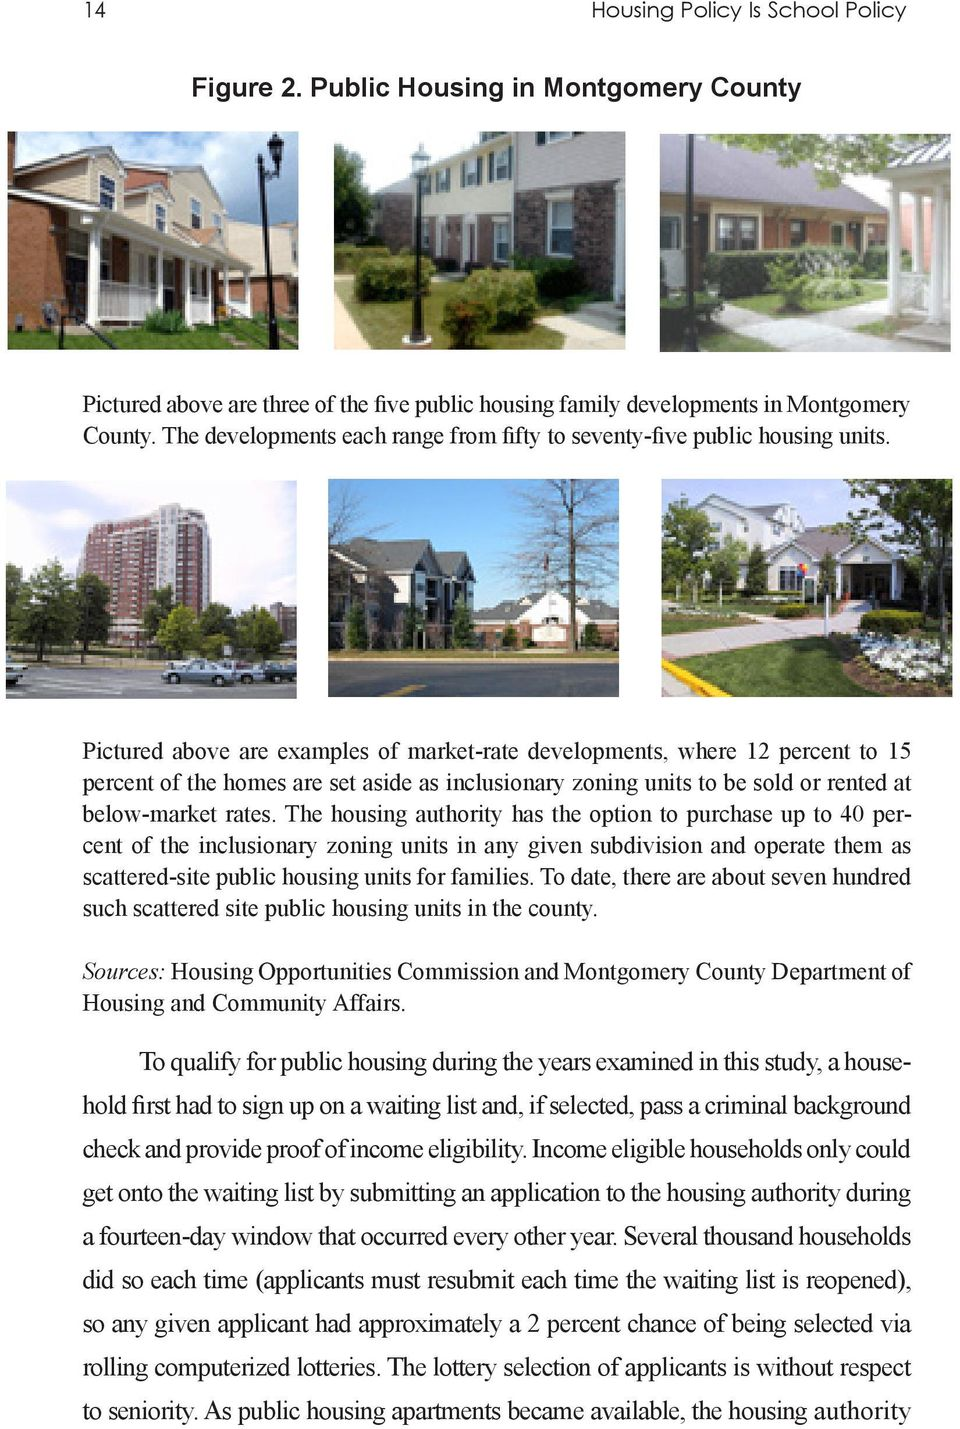 Pictured above are examples of market-rate developments, where 12 percent to 15 percent of the homes are set aside as inclusionary zoning units to be sold or rented at below-market rates.